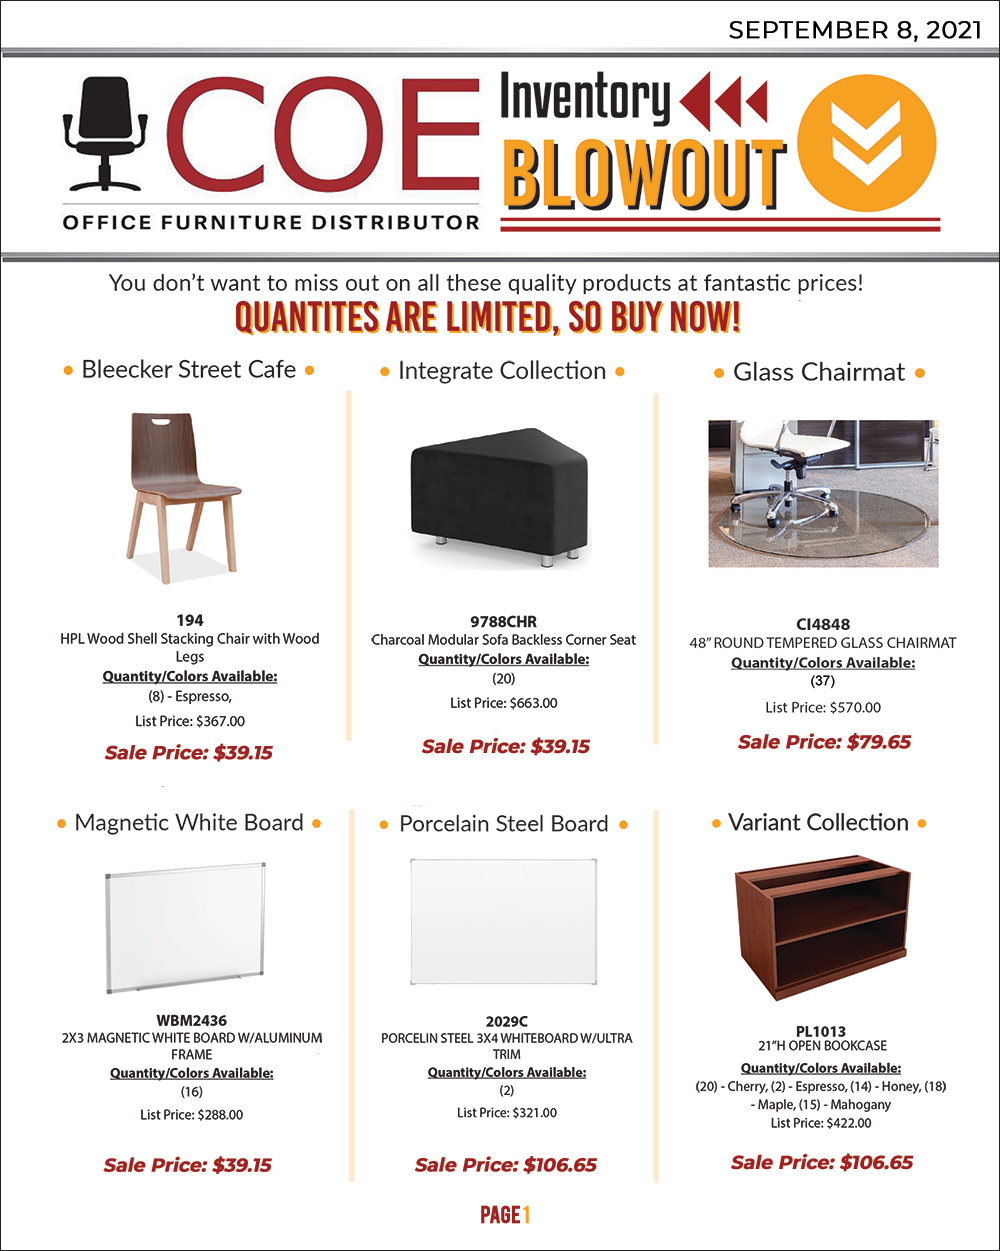 Blowout Sale 9-8-21 Andy Stern's